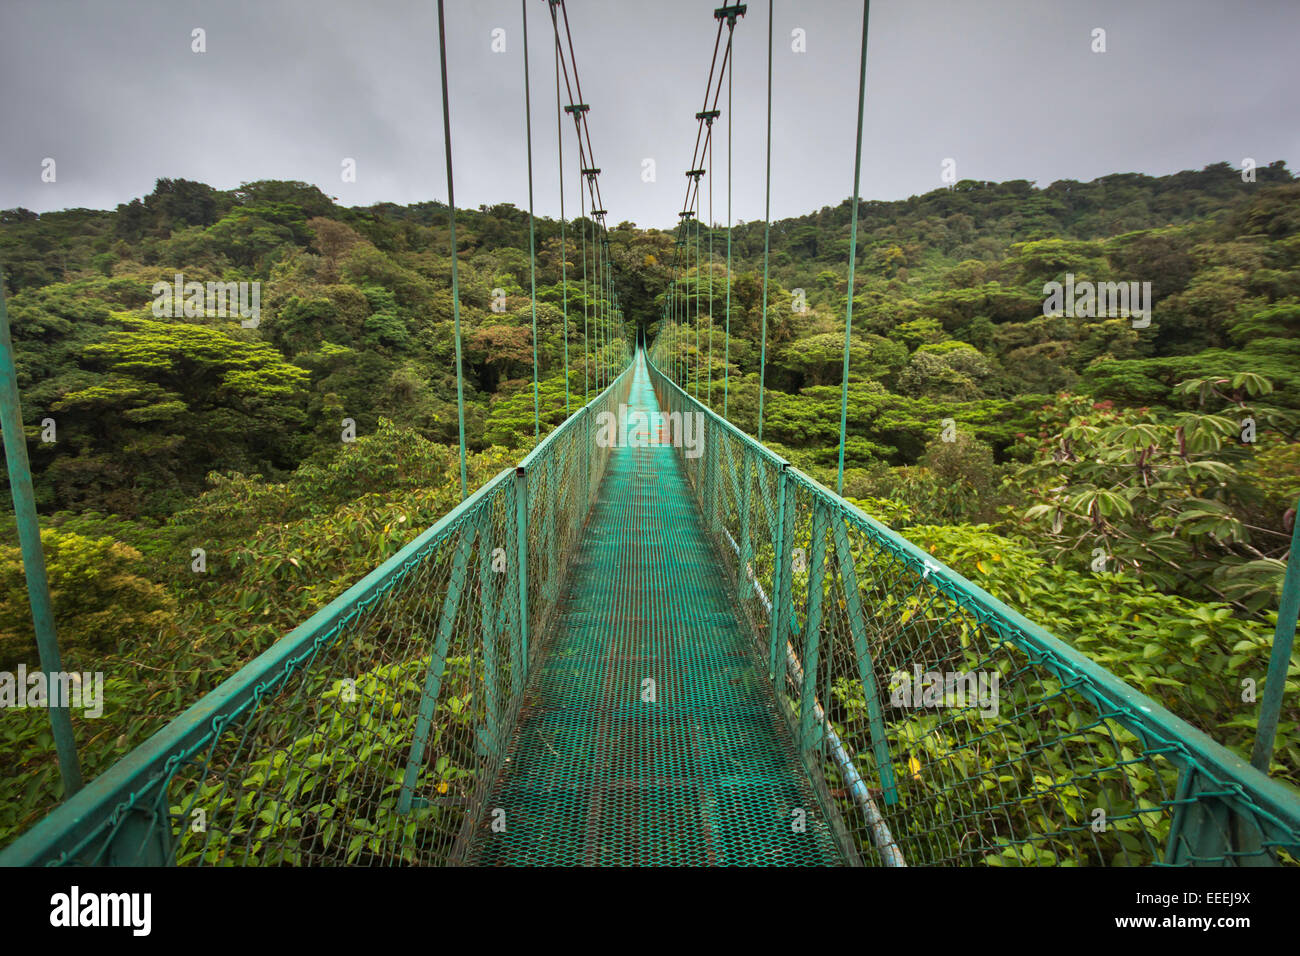 Pont suspendu haut de cette forêt du Costa Rica Photo Stock